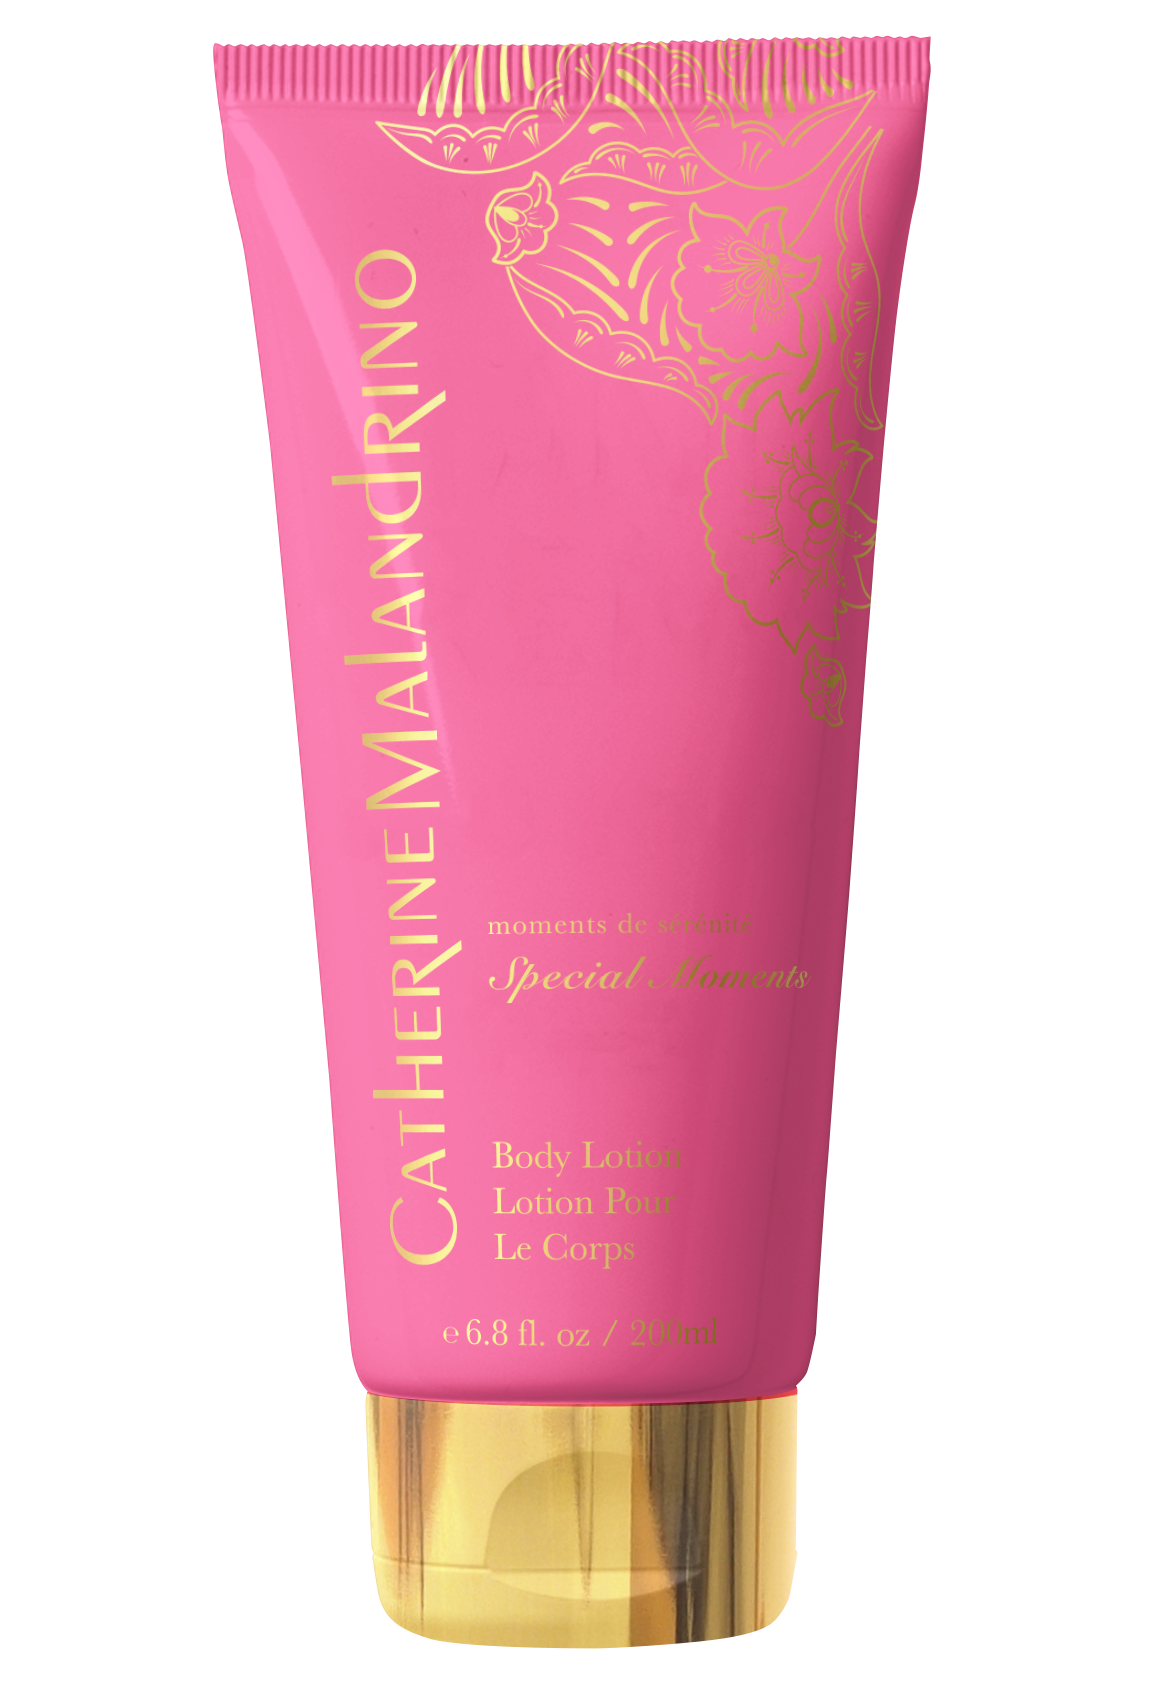 Special Moments Body Lotion 6.8oz